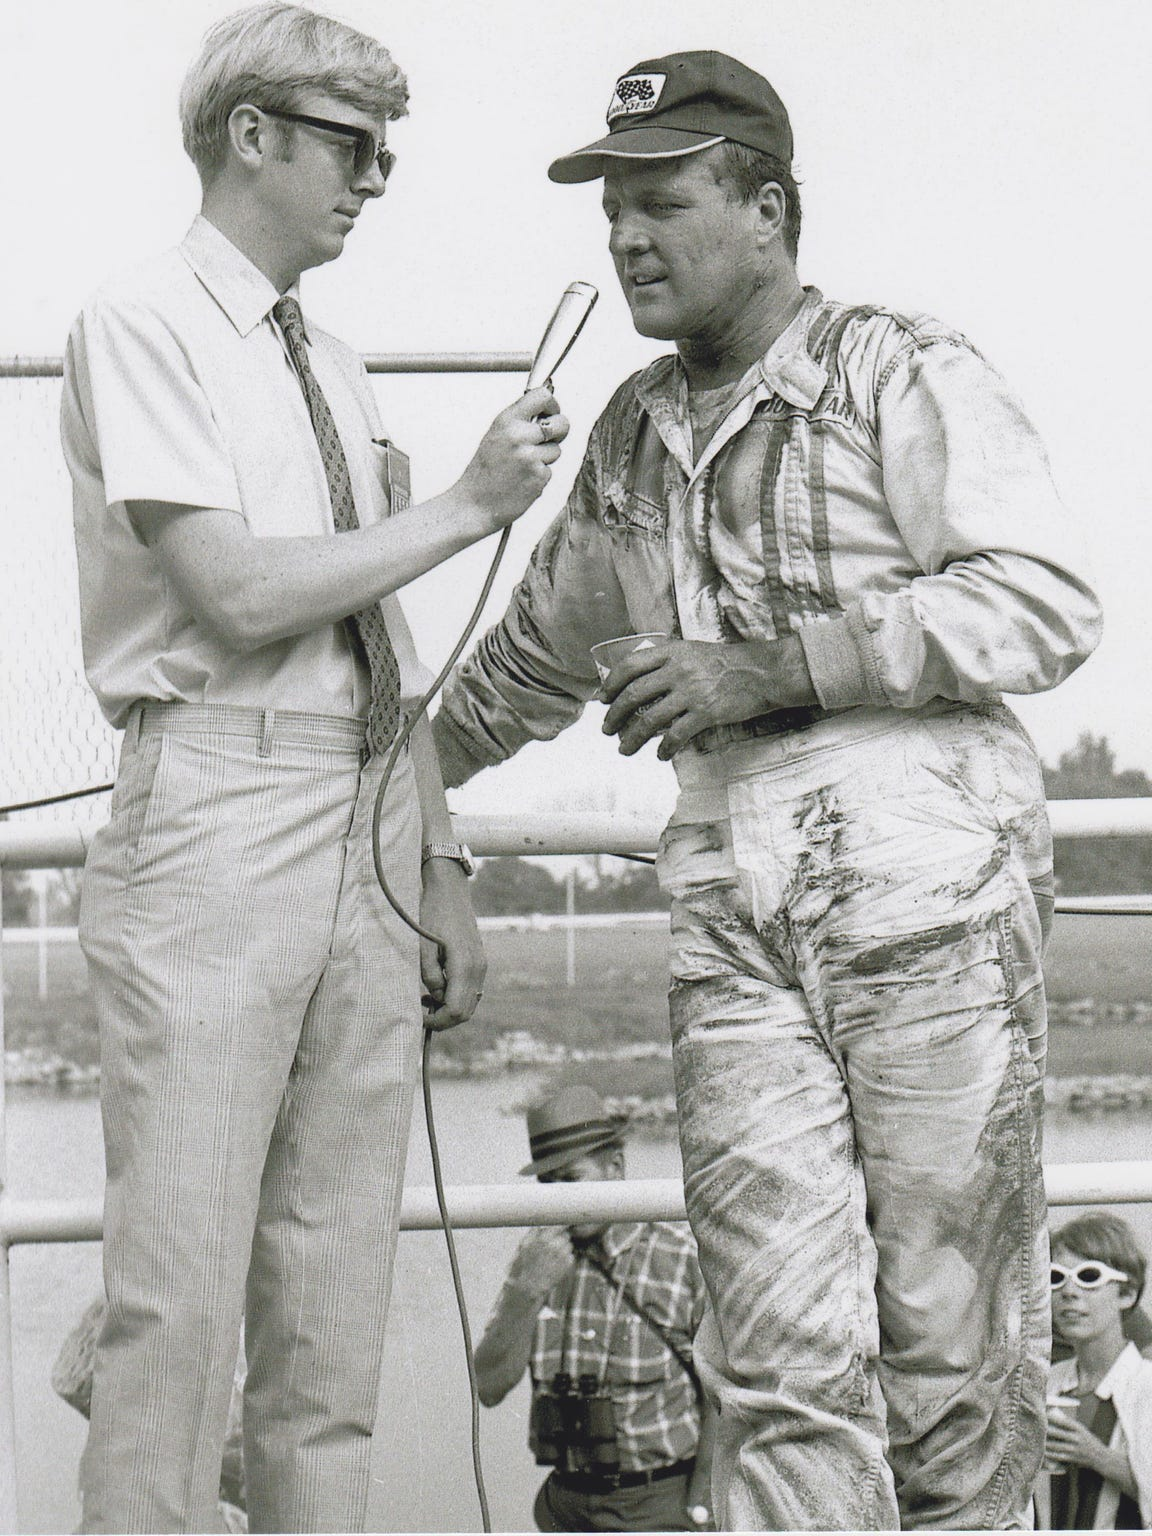 Donald Davidson, then working for the United States Auto Club, chats with four-time Indy 500 winner A.J. Foyt after a race in Illinois in 1969.